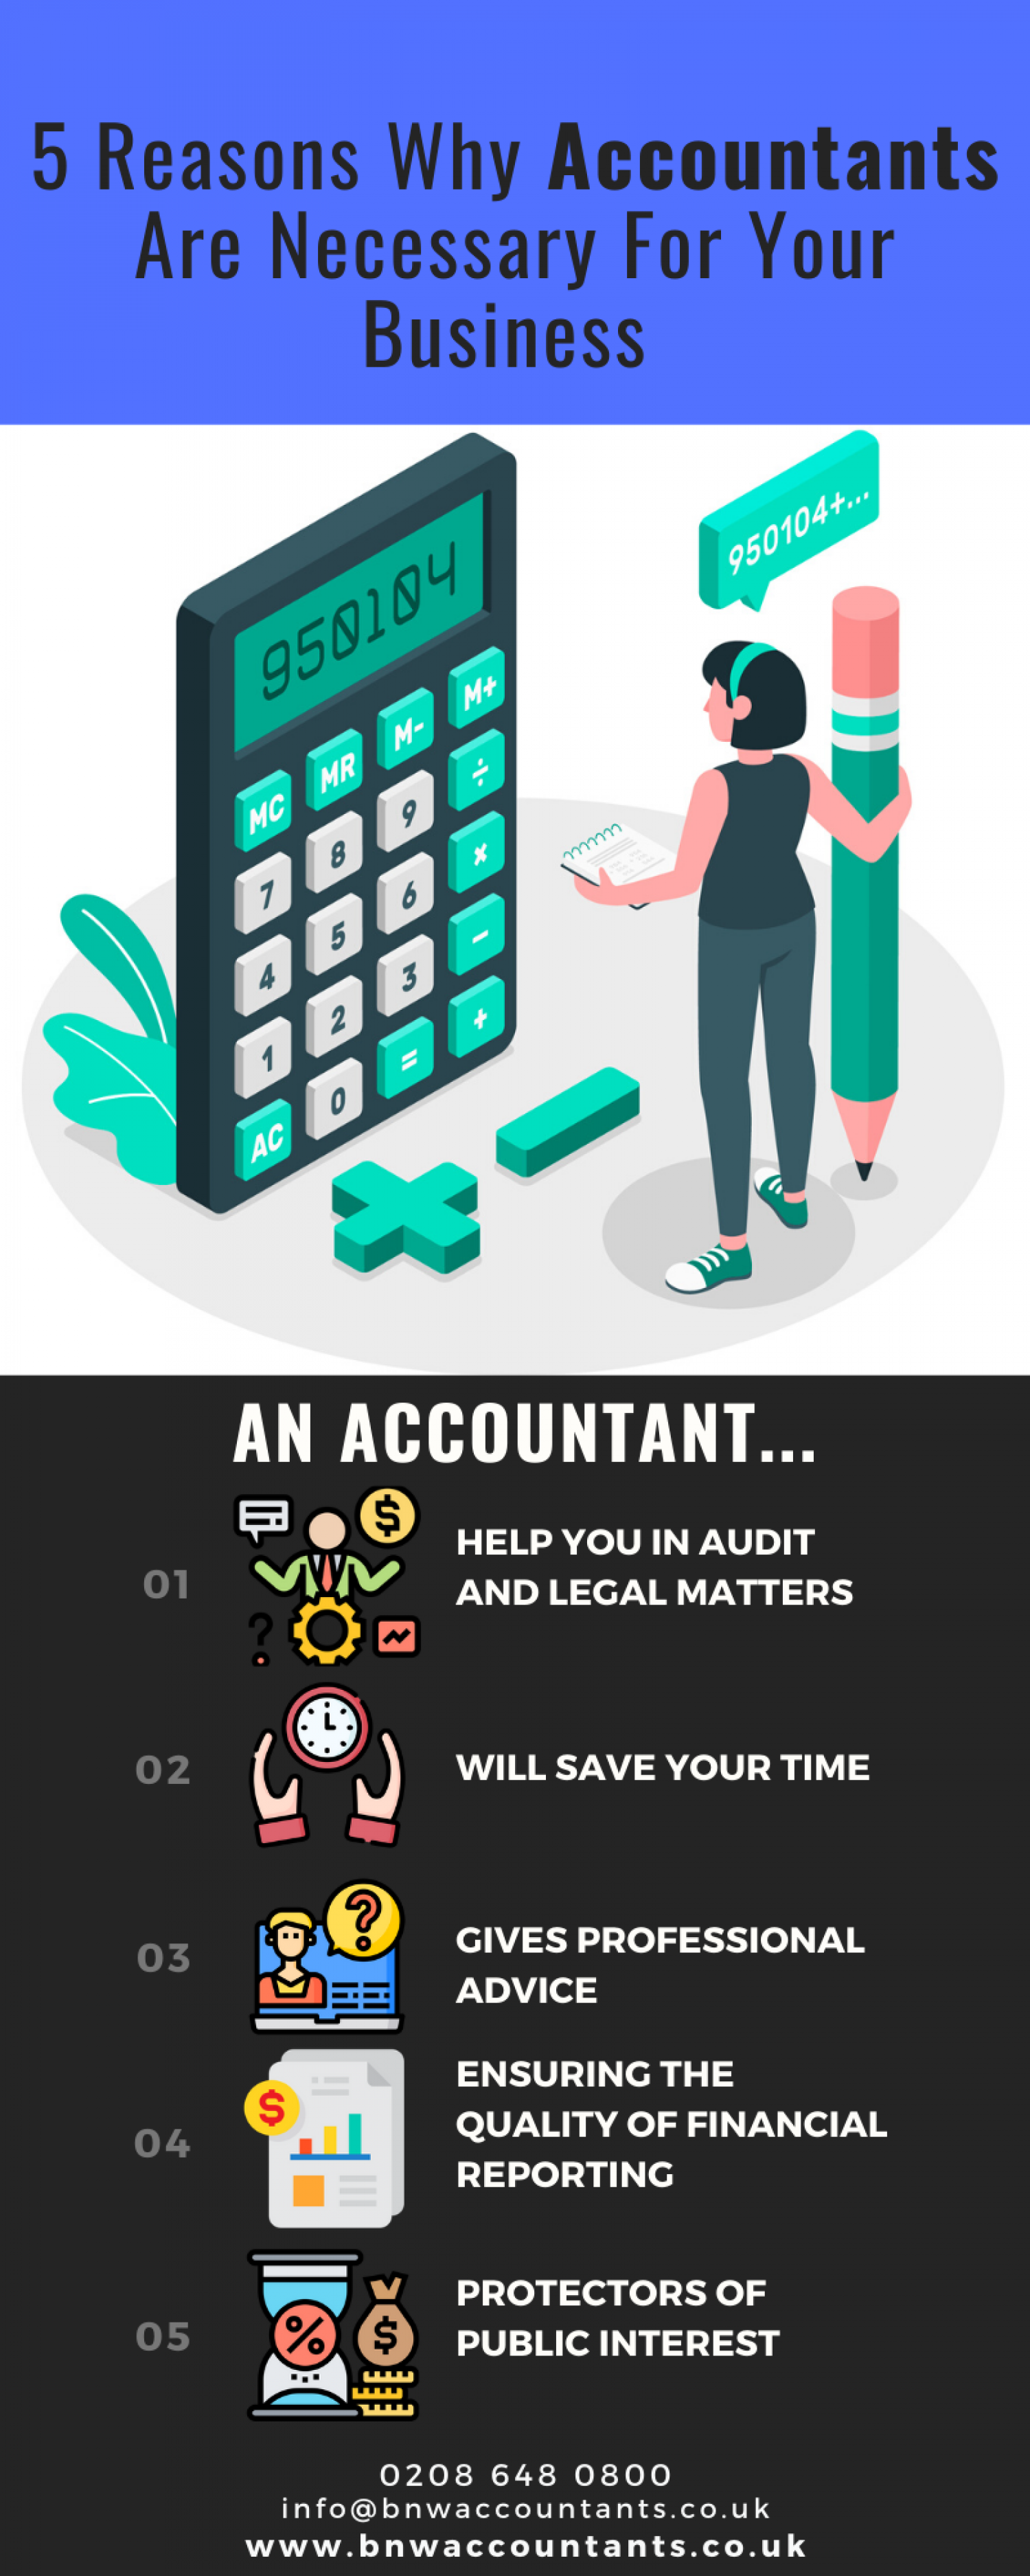 Five Reasons Why Accountants are Important for Business Infographic